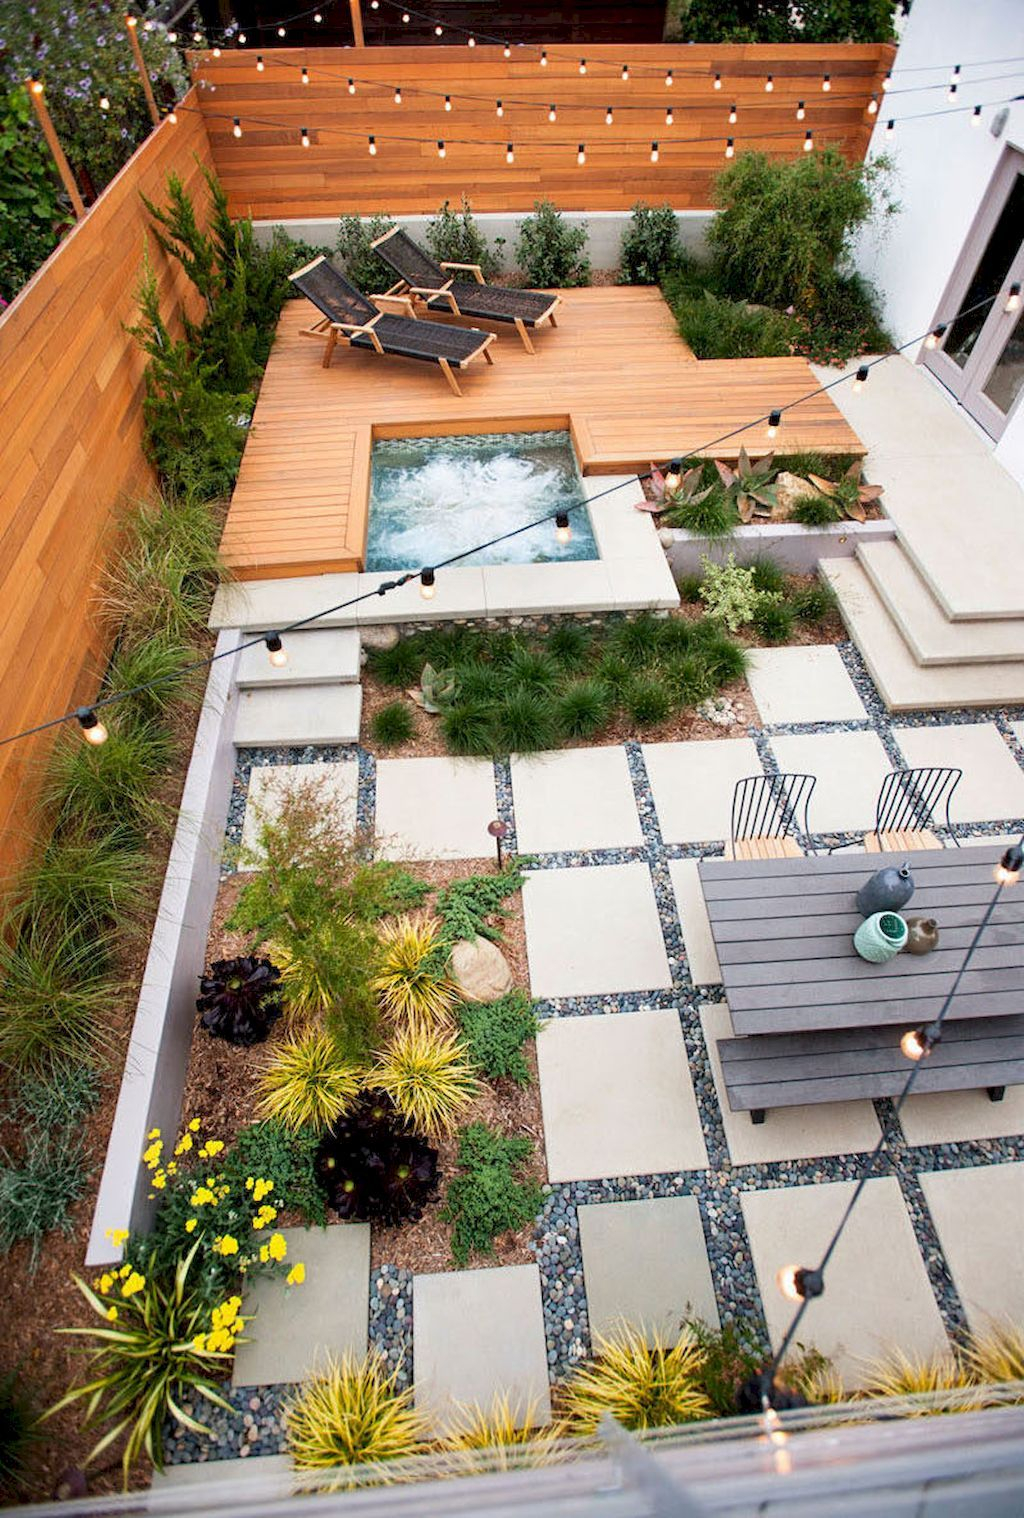 80 Small Backyard Landscaping Ideas On A Budget For The throughout Simple Backyard Ideas On A Budget